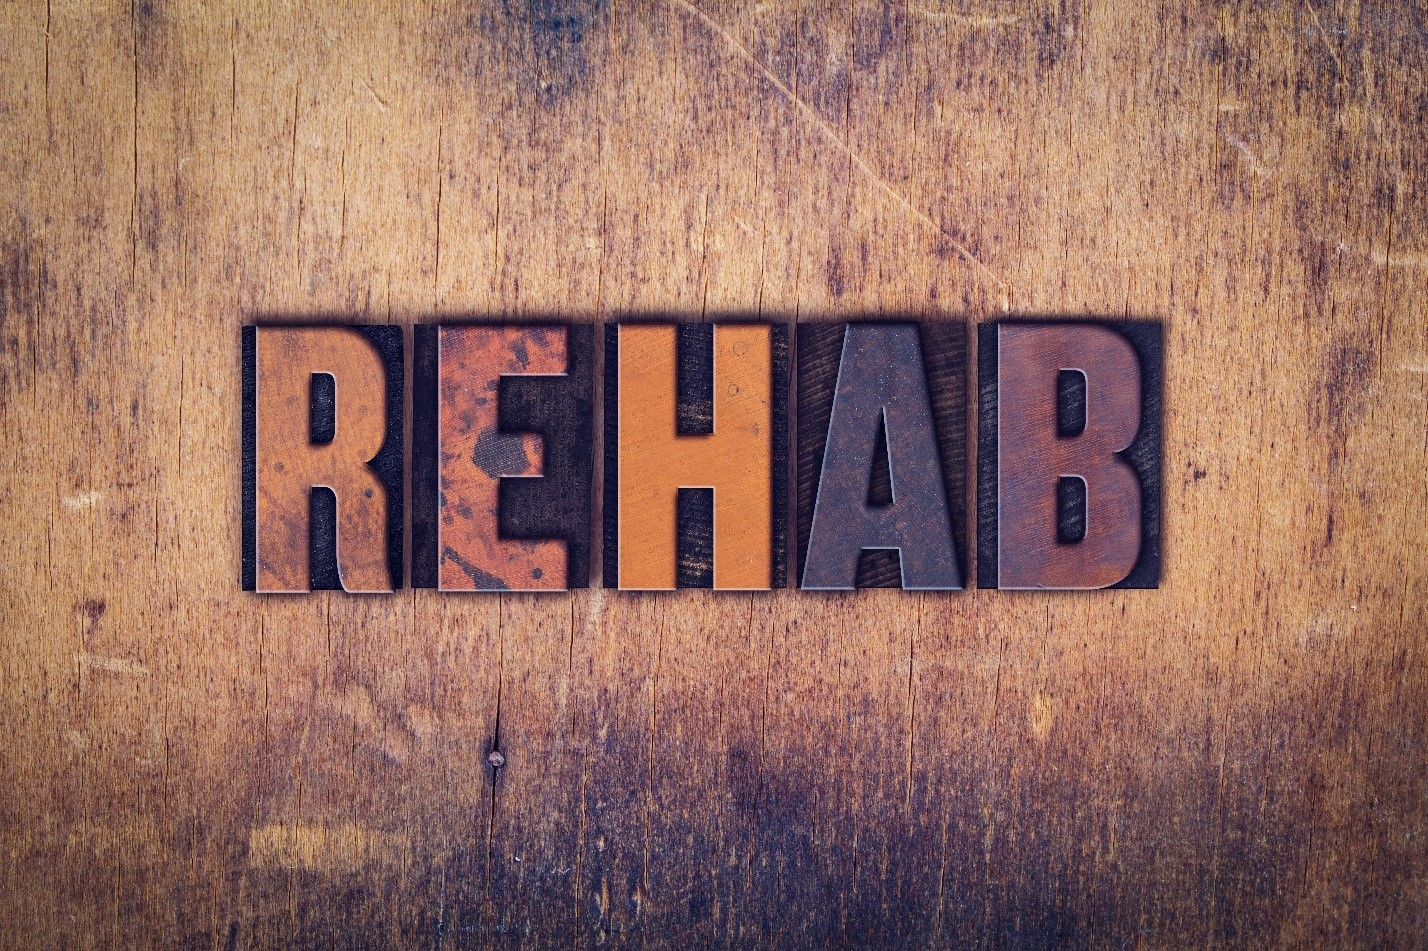 rehab sign on wood